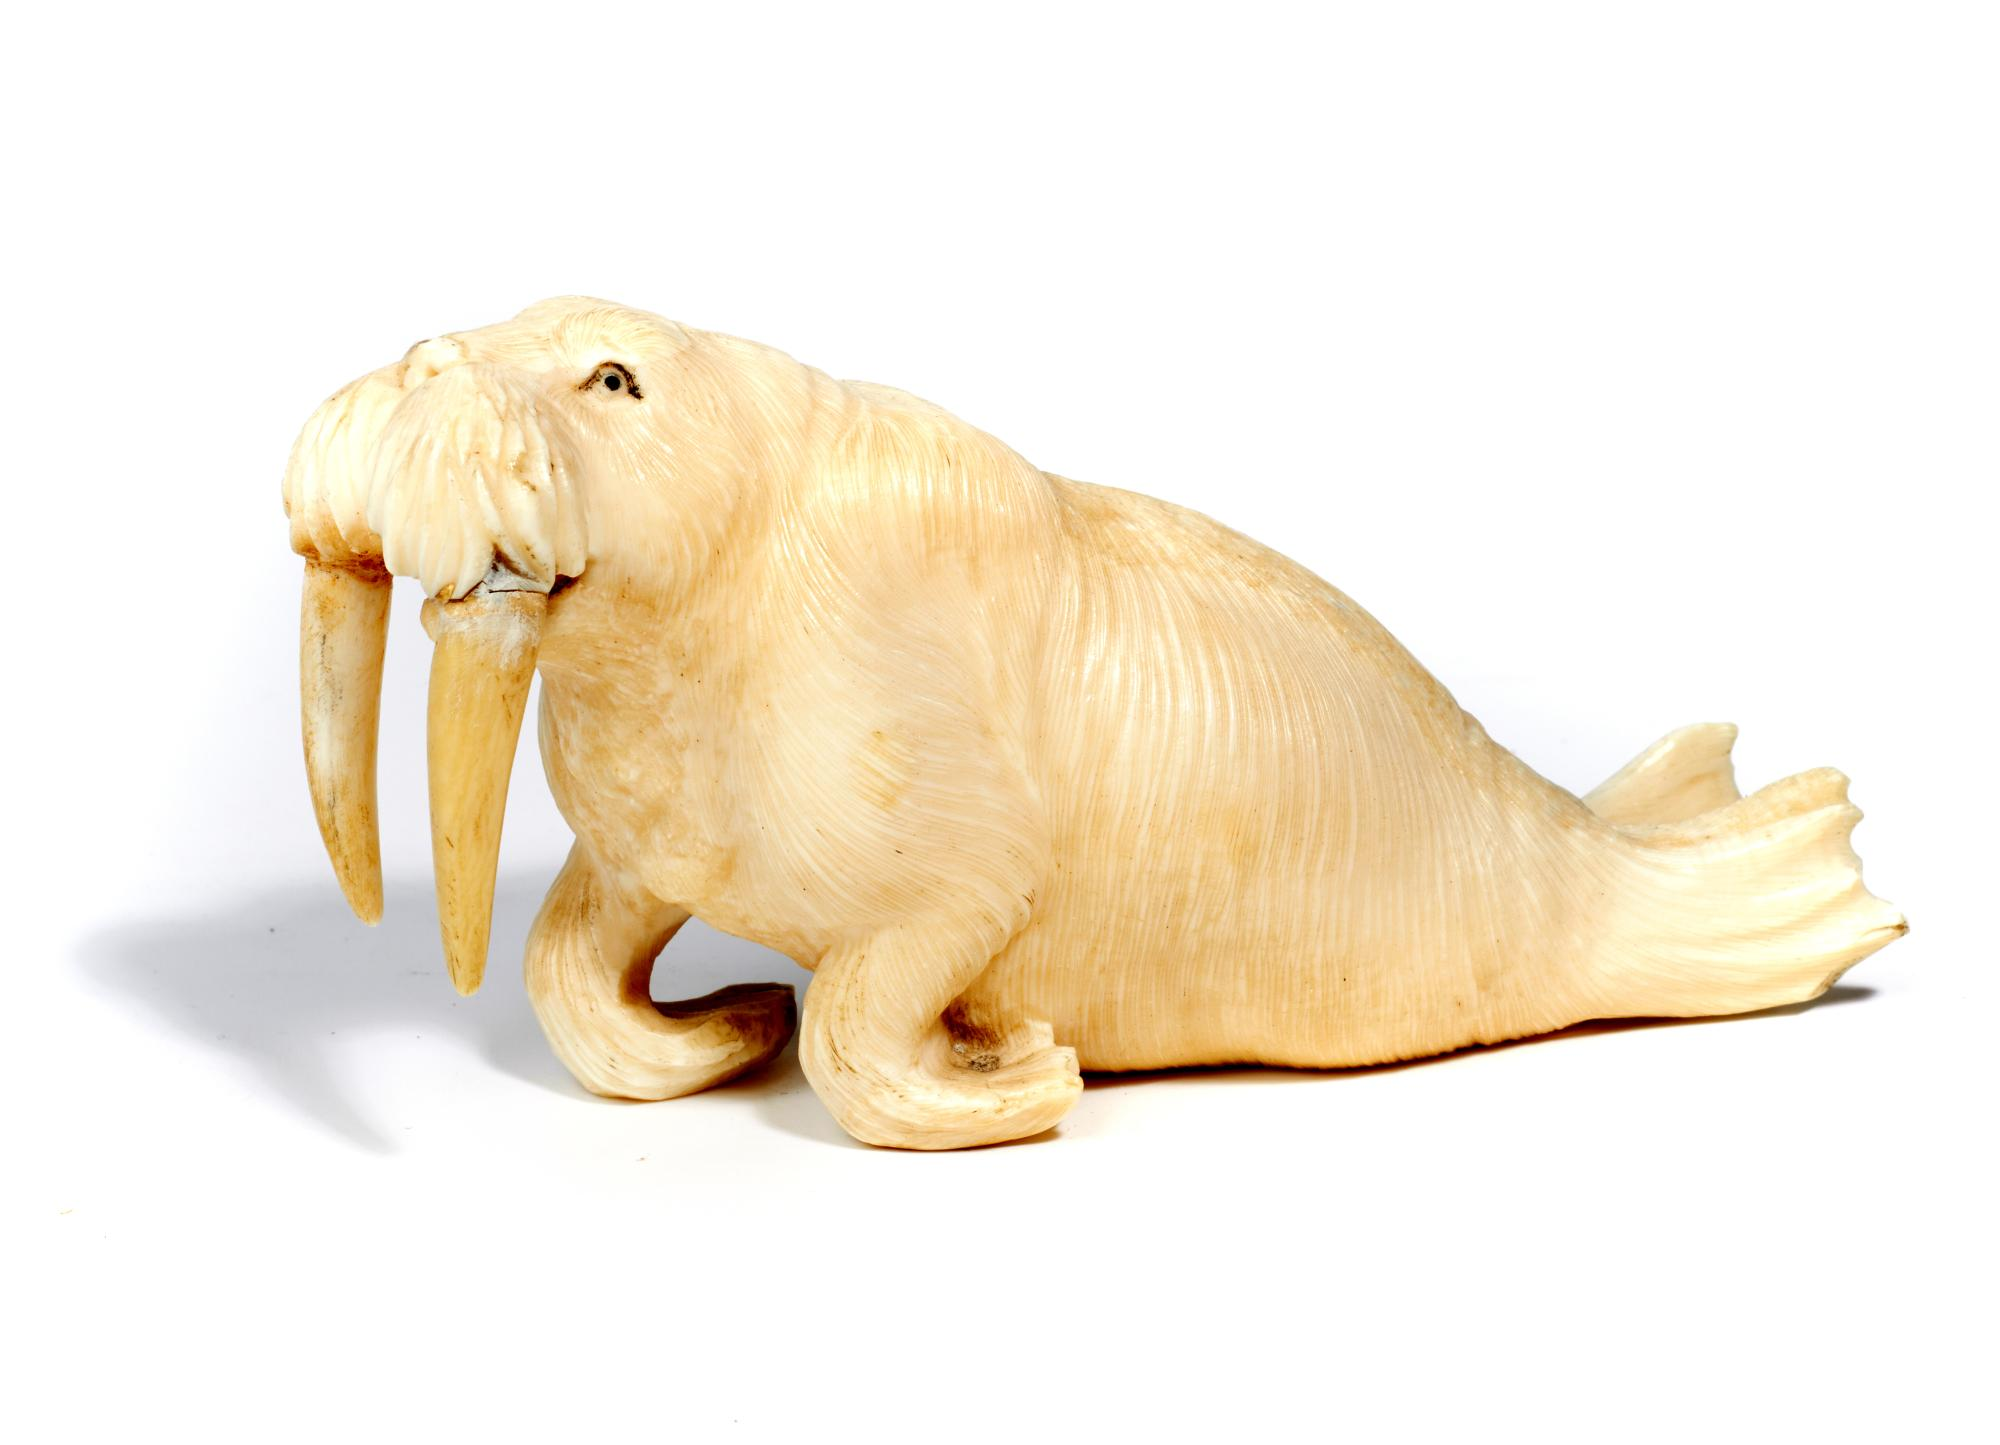 Lot 131 - Oriental/Interior Design: A carved marine ivory walrus, probably Japanese, Meiji Period (1868-1912)